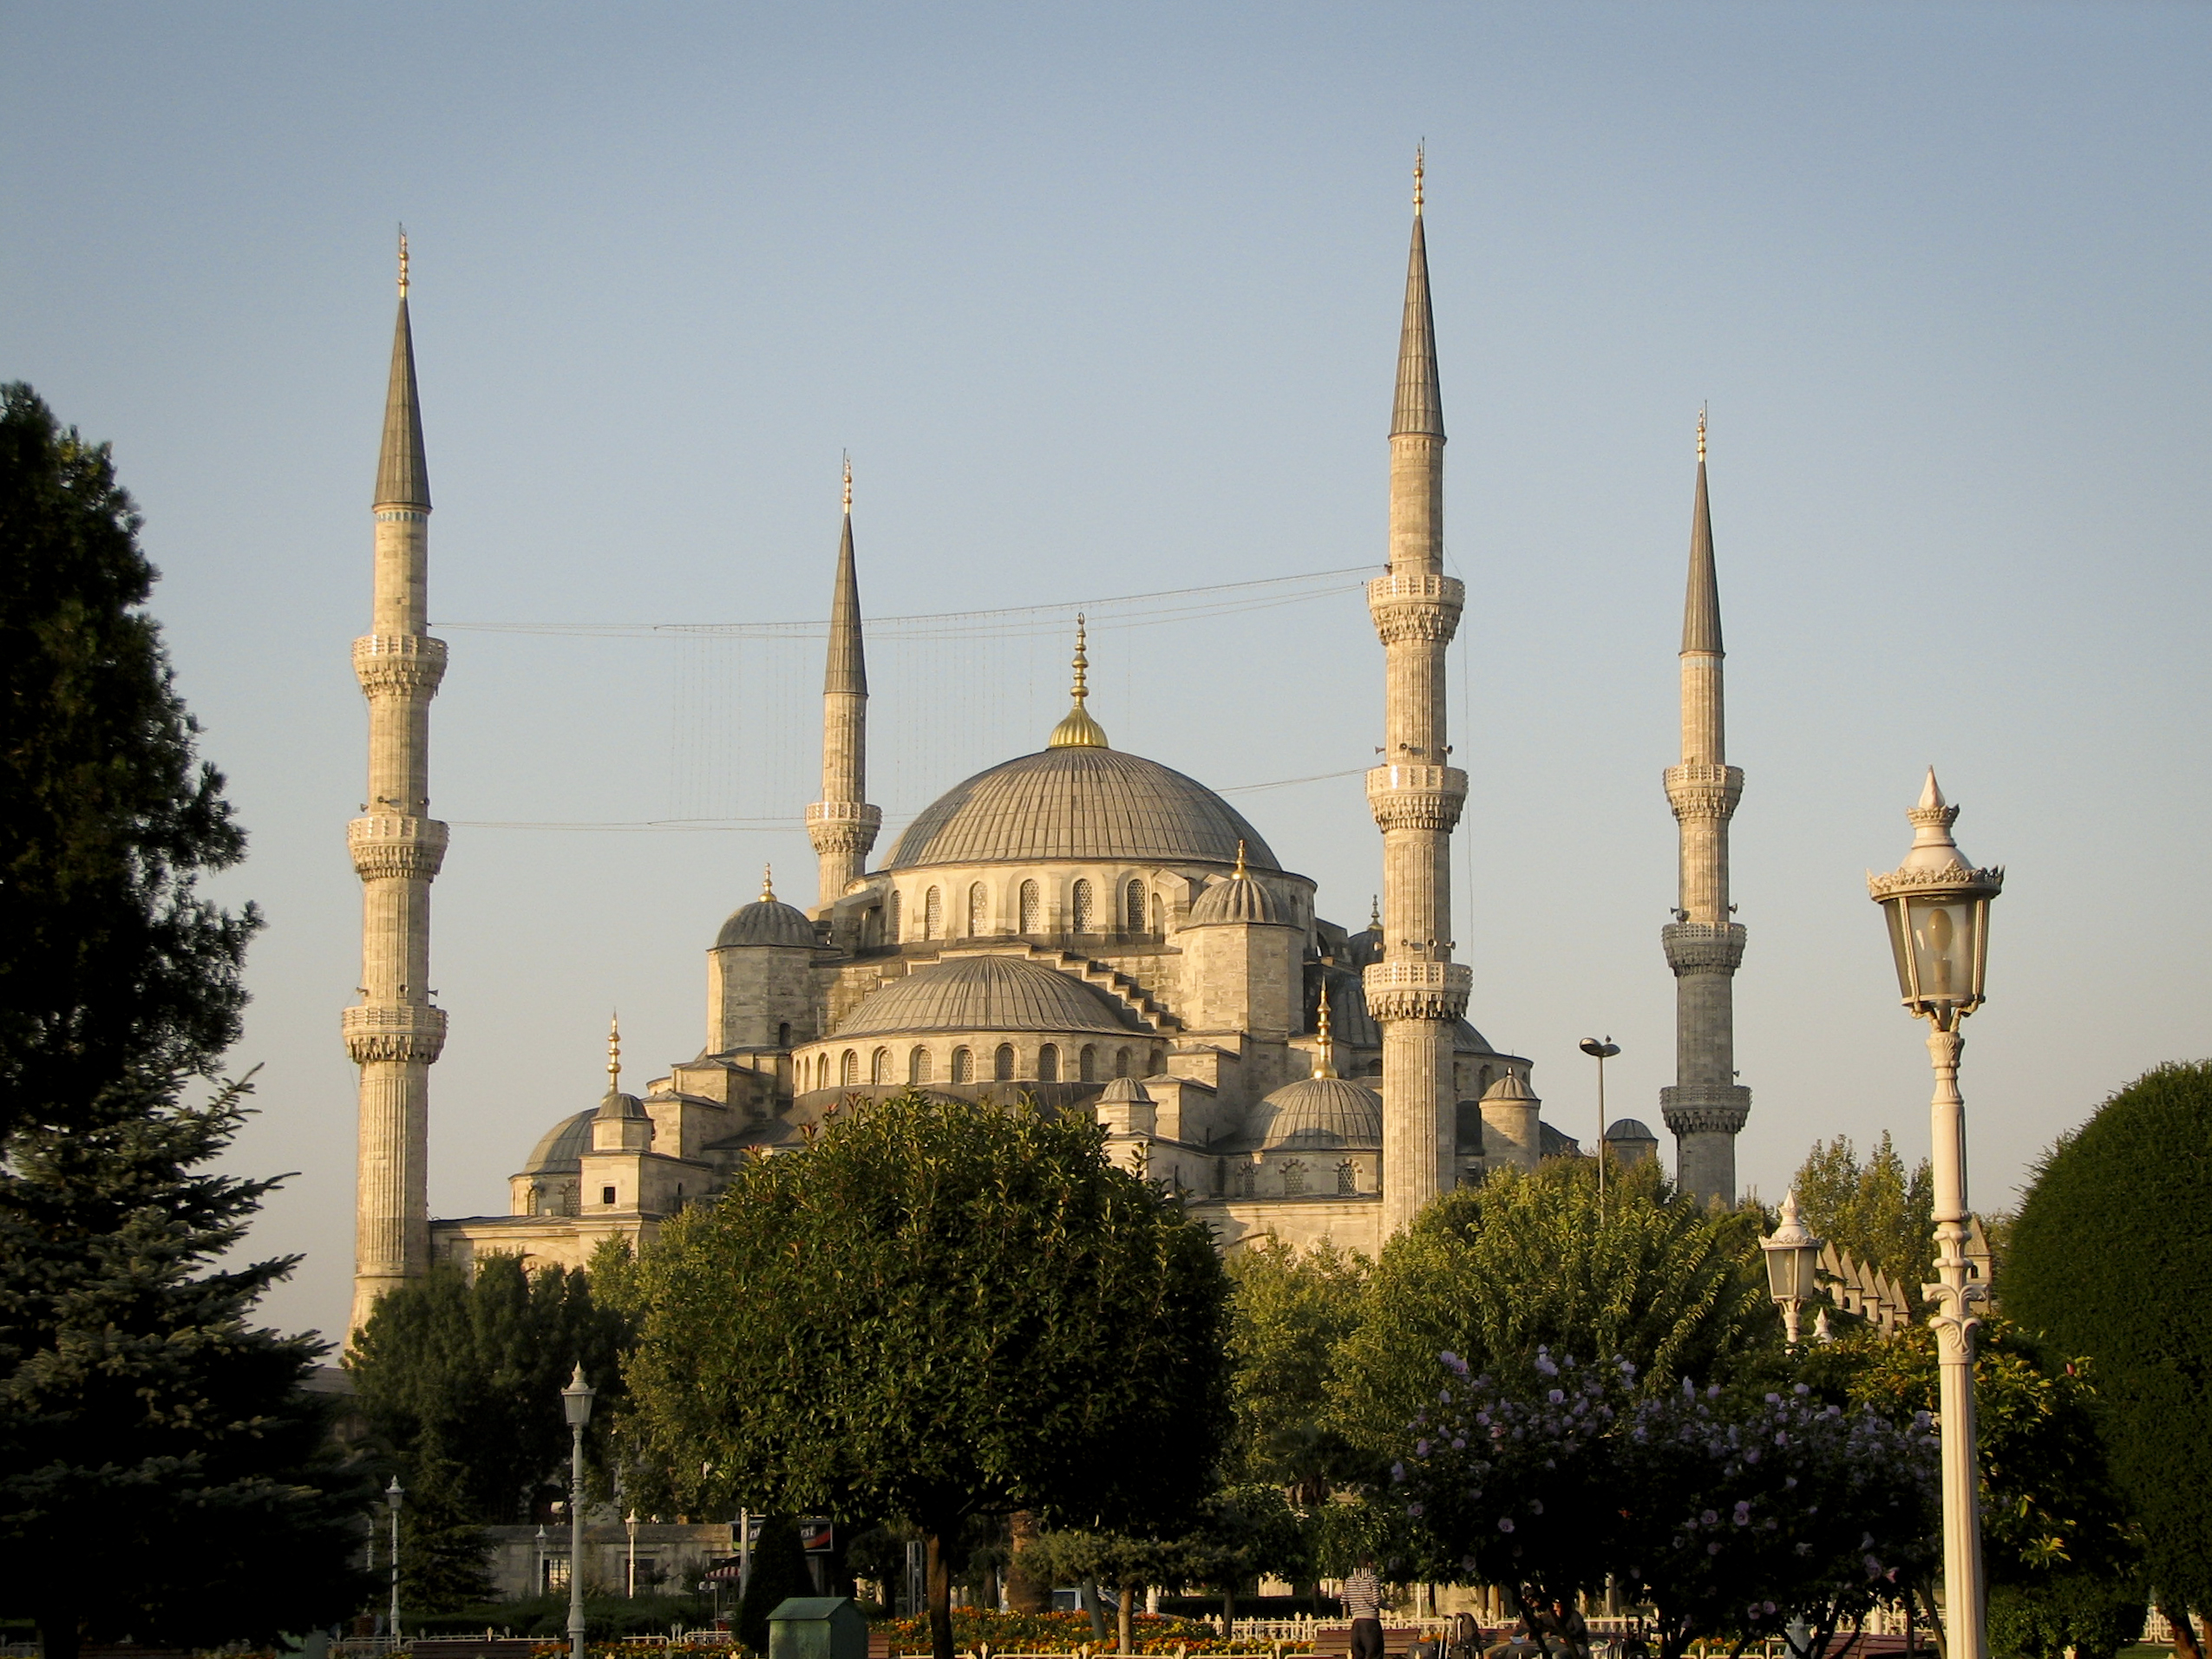 File:Blue mosque - Istanbul - 01.jpg - Wikimedia Commons